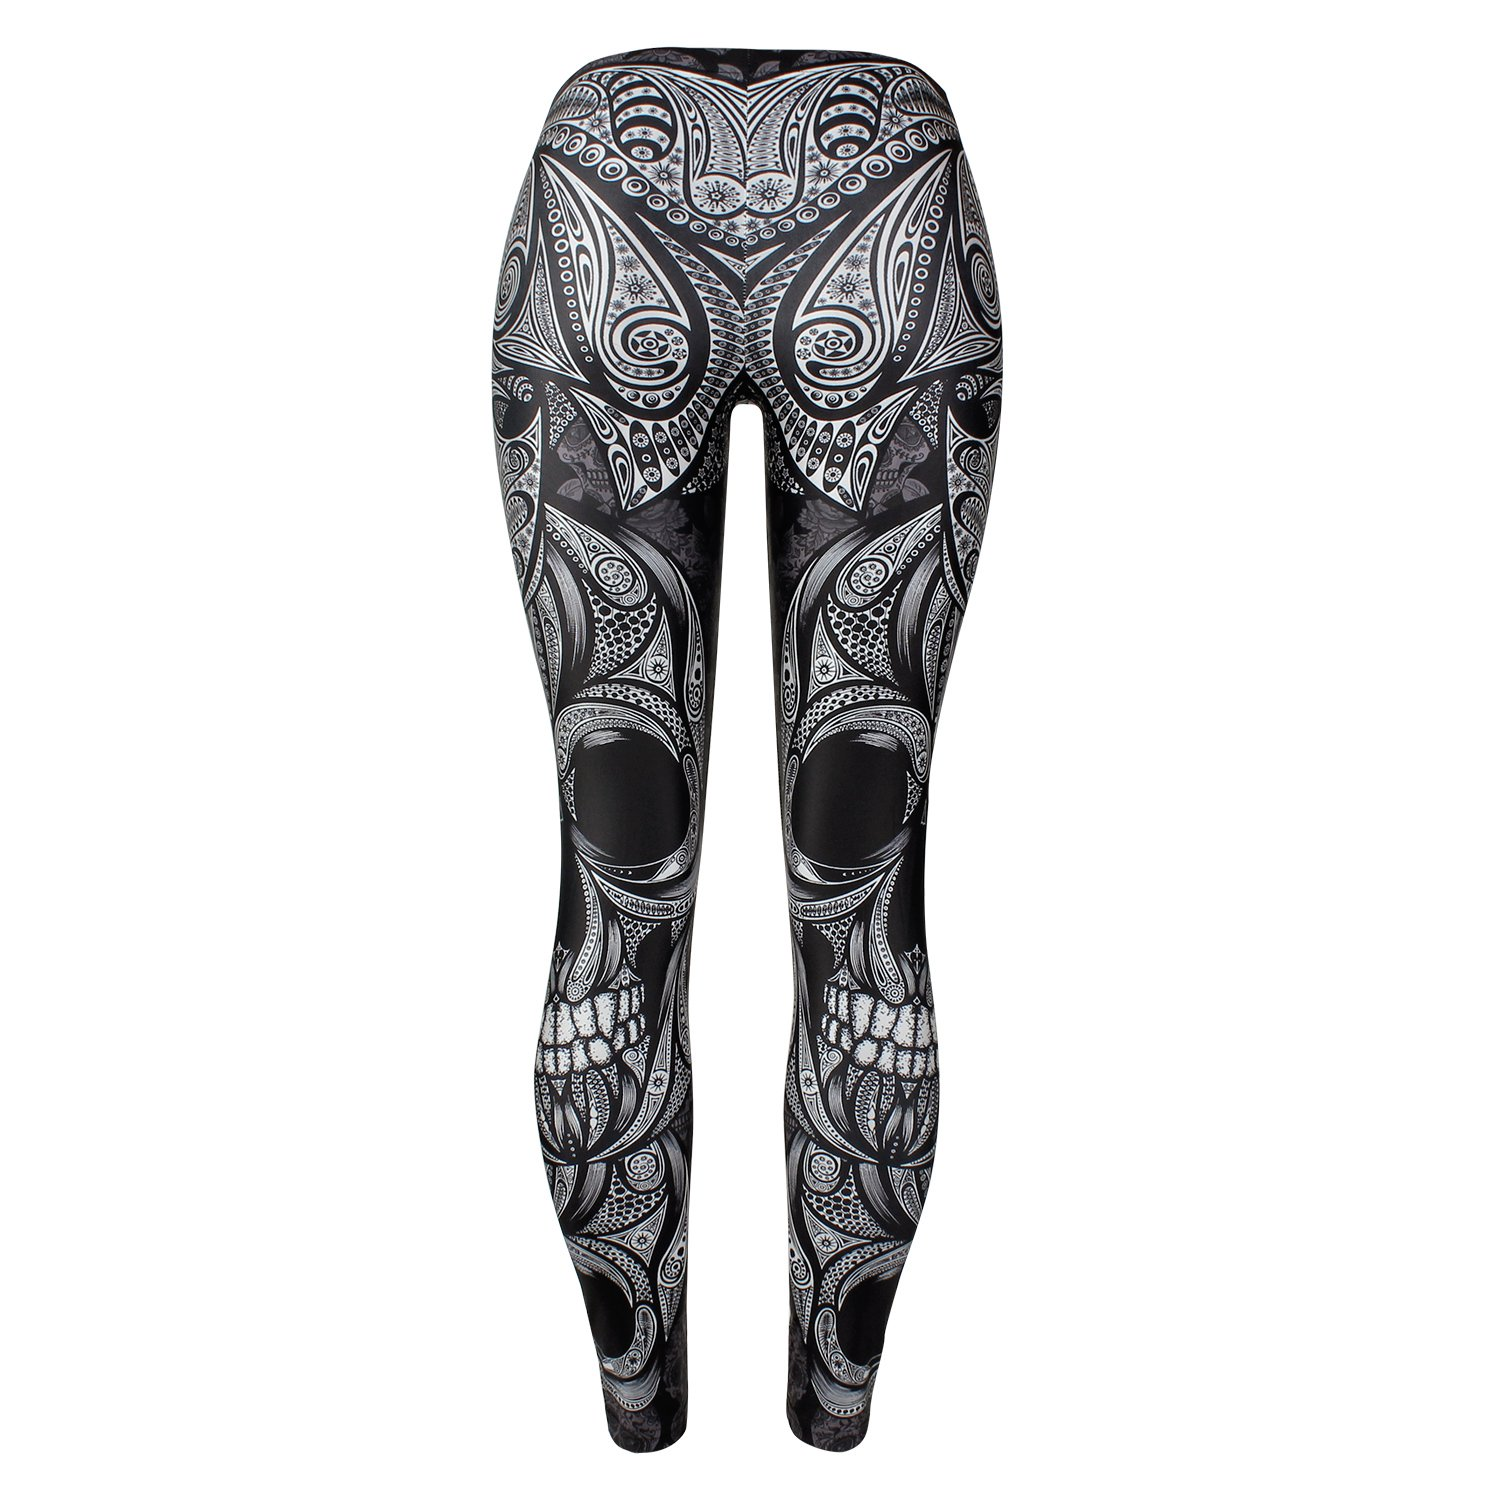 28a7a1f48 Amazon.com  Mad Ink Sexy Tight Pants Skull Tattoo Digital Full 3D Print  Elasticity Leggings Pencil Pants for Women Girls (Art Skull)  Sports    Outdoors